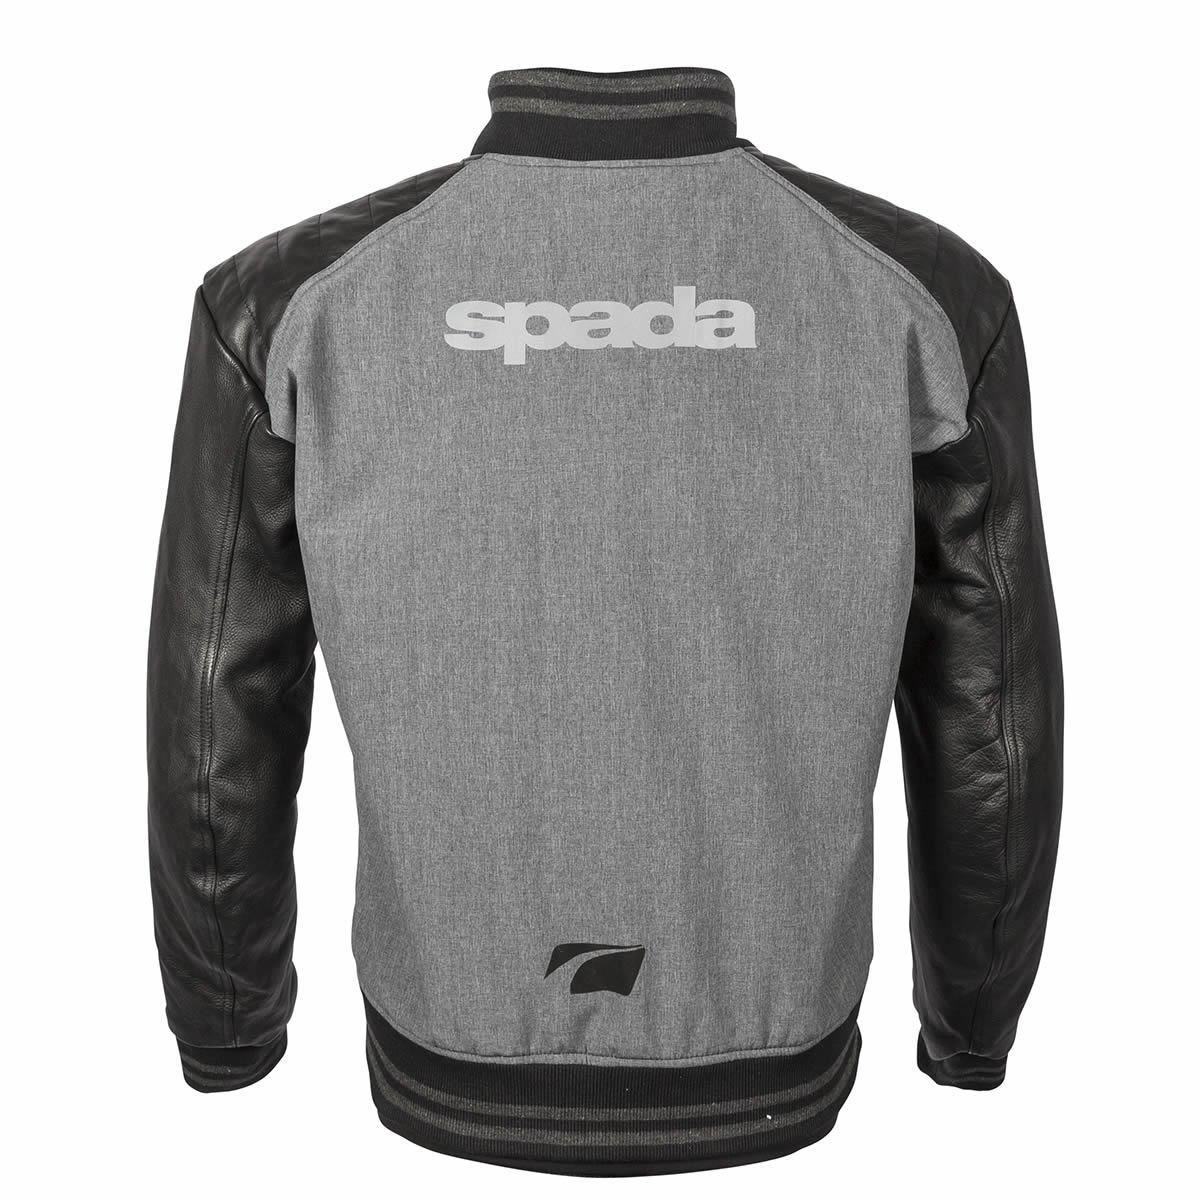 Spada-Campus-Yale-Men-039-s-Motorcycle-Jacket-Grey-Leather-Textile-CE-Armour-Summer miniature 23